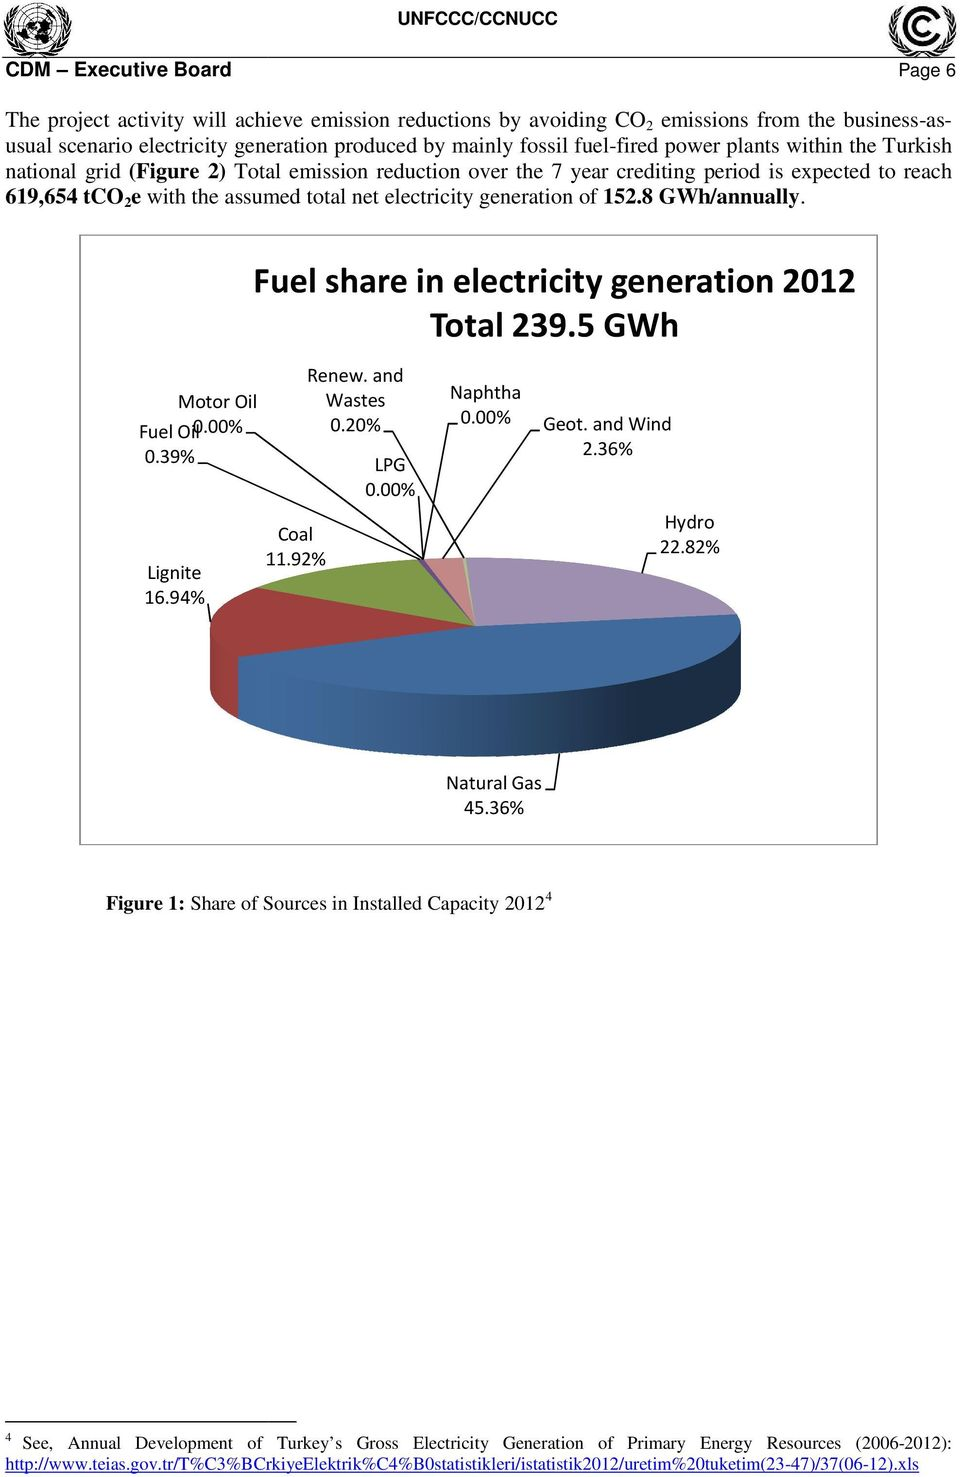 electricity generation of 152.8 GWh/annually. Fuel share in electricity generation 2012 Total 239.5 GWh Motor Oil Fuel Oil 0.00% 0.39% Lignite 16.94% Coal 11.92% Renew. and Wastes 0.20% LPG 0.